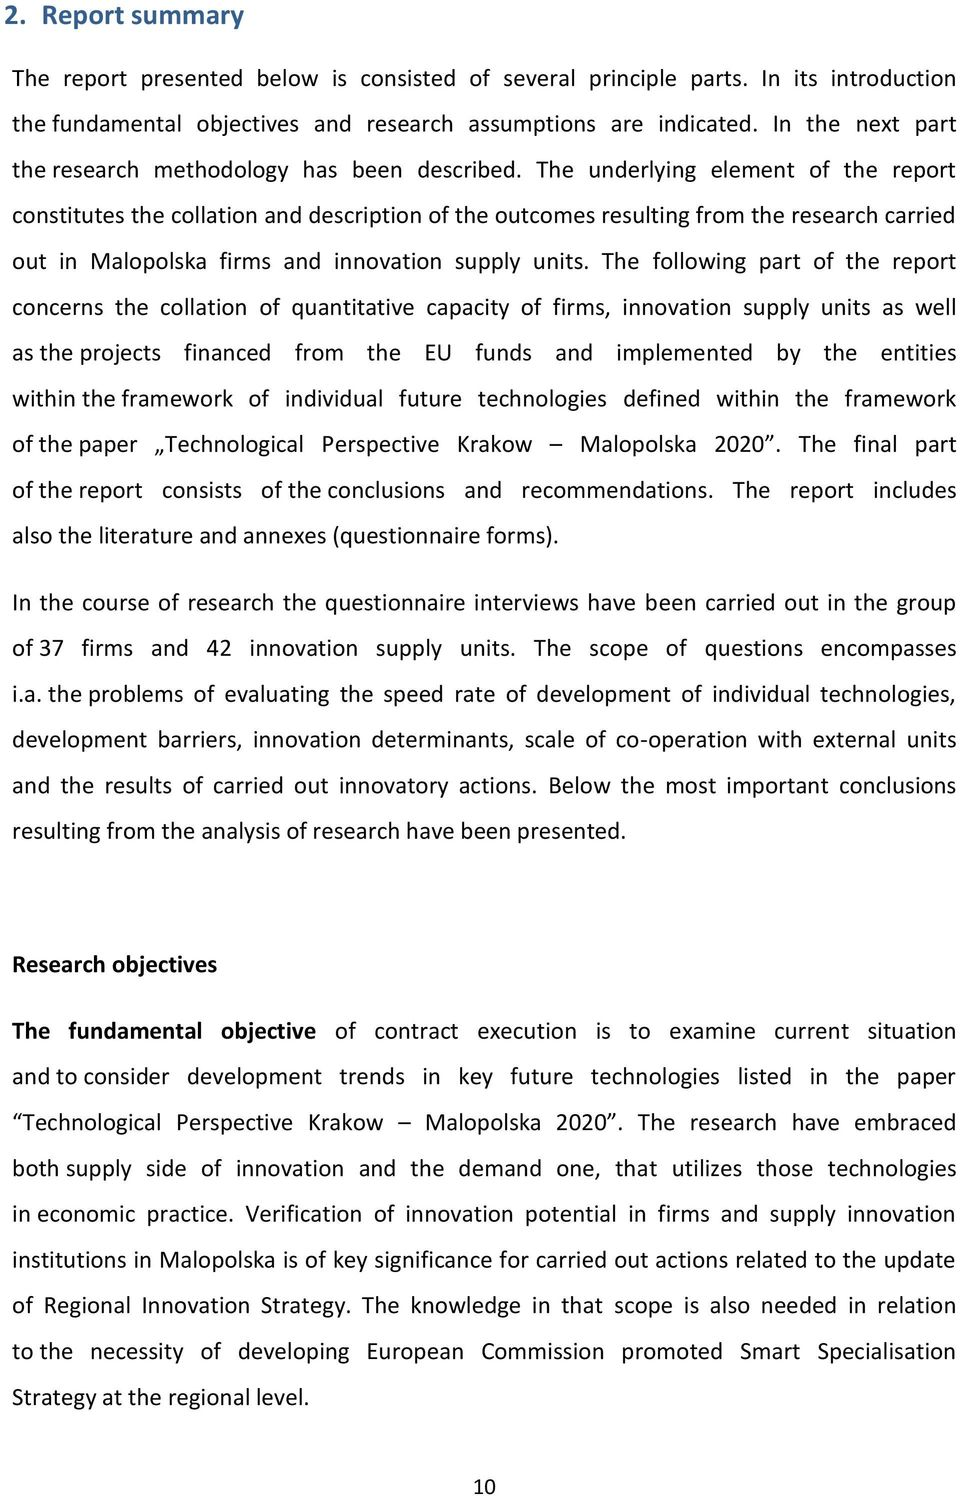 The underlying element of the report constitutes the collation and description of the outcomes resulting from the research carried out in Malopolska firms and innovation supply units.